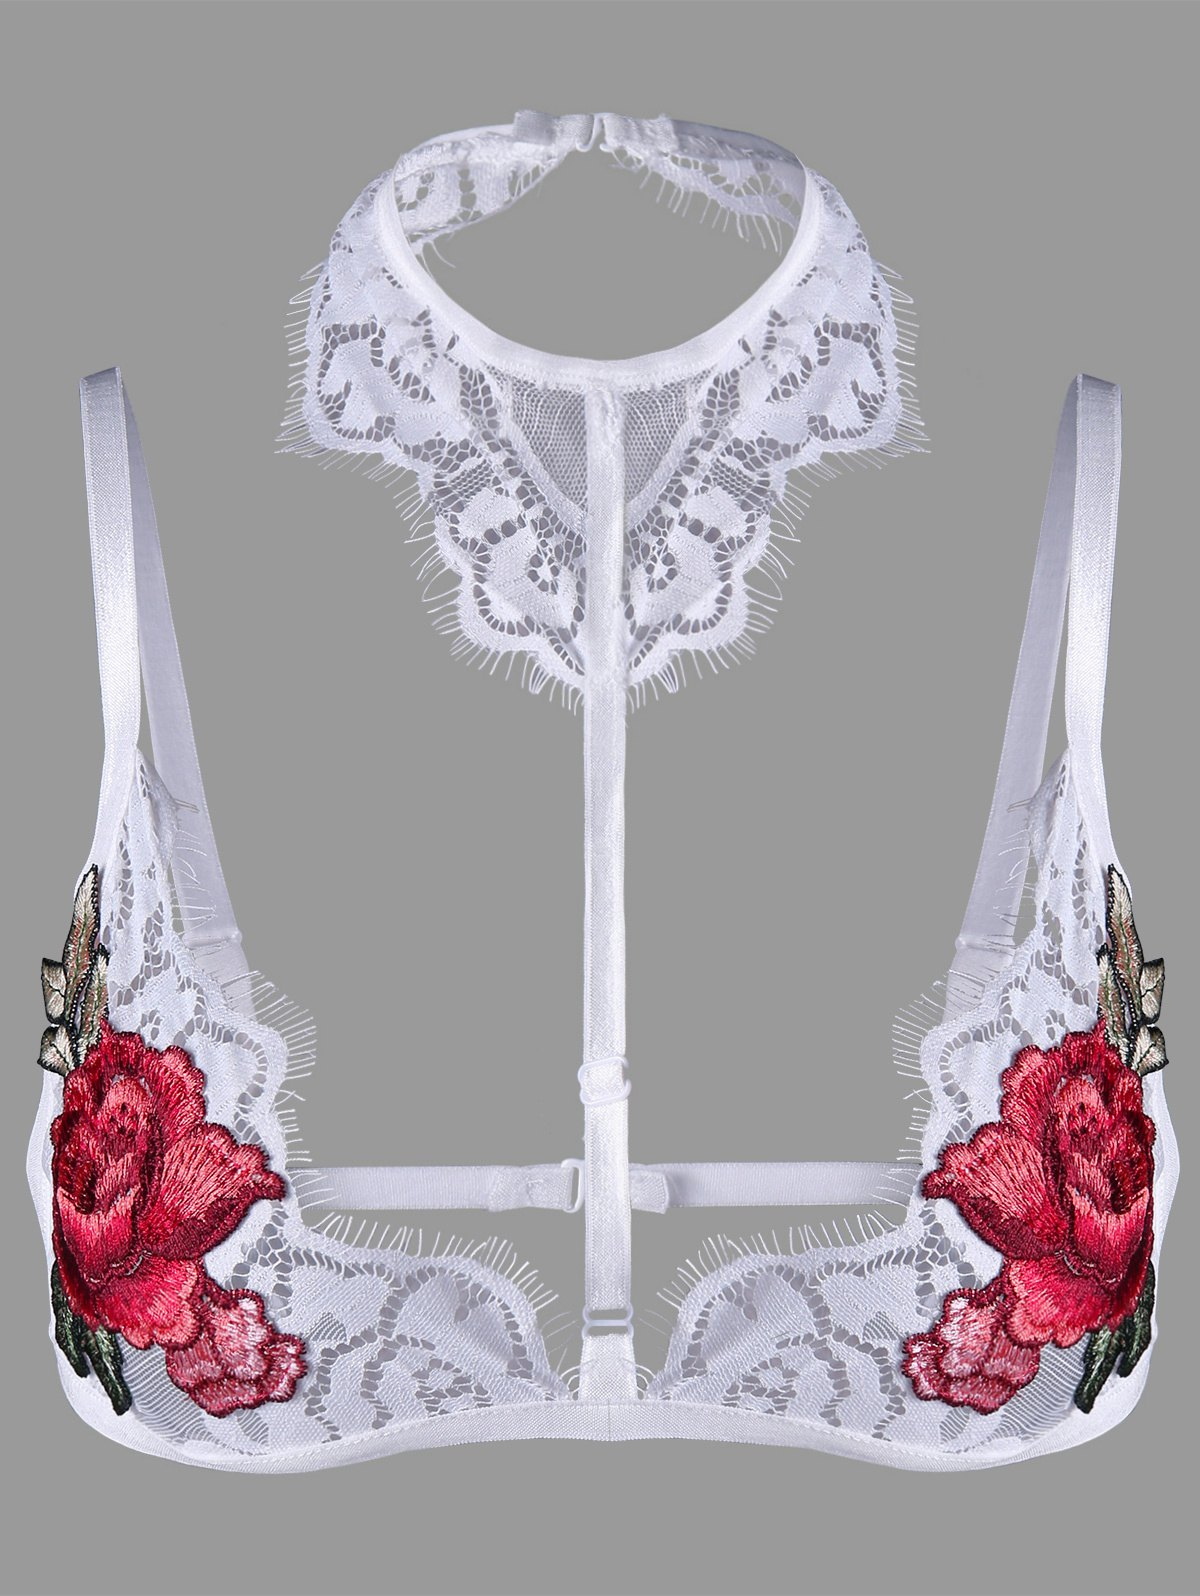 Lace Flower Embroidered Choker Bralette - WHITE S